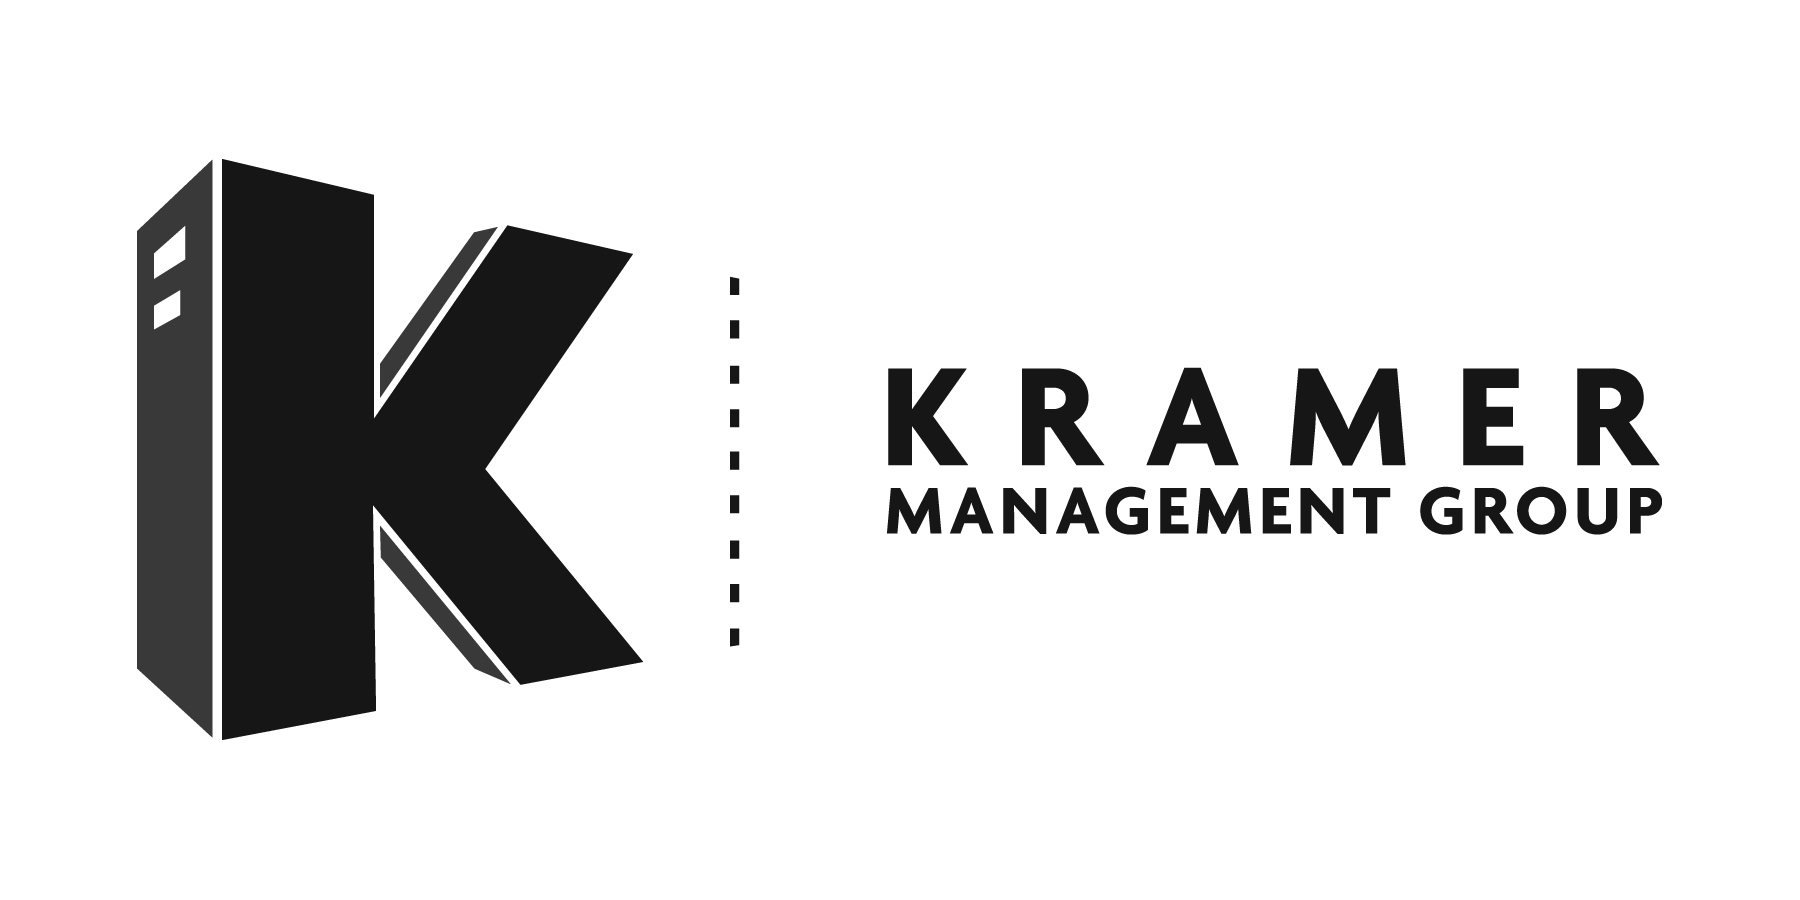 Kramer Management Group